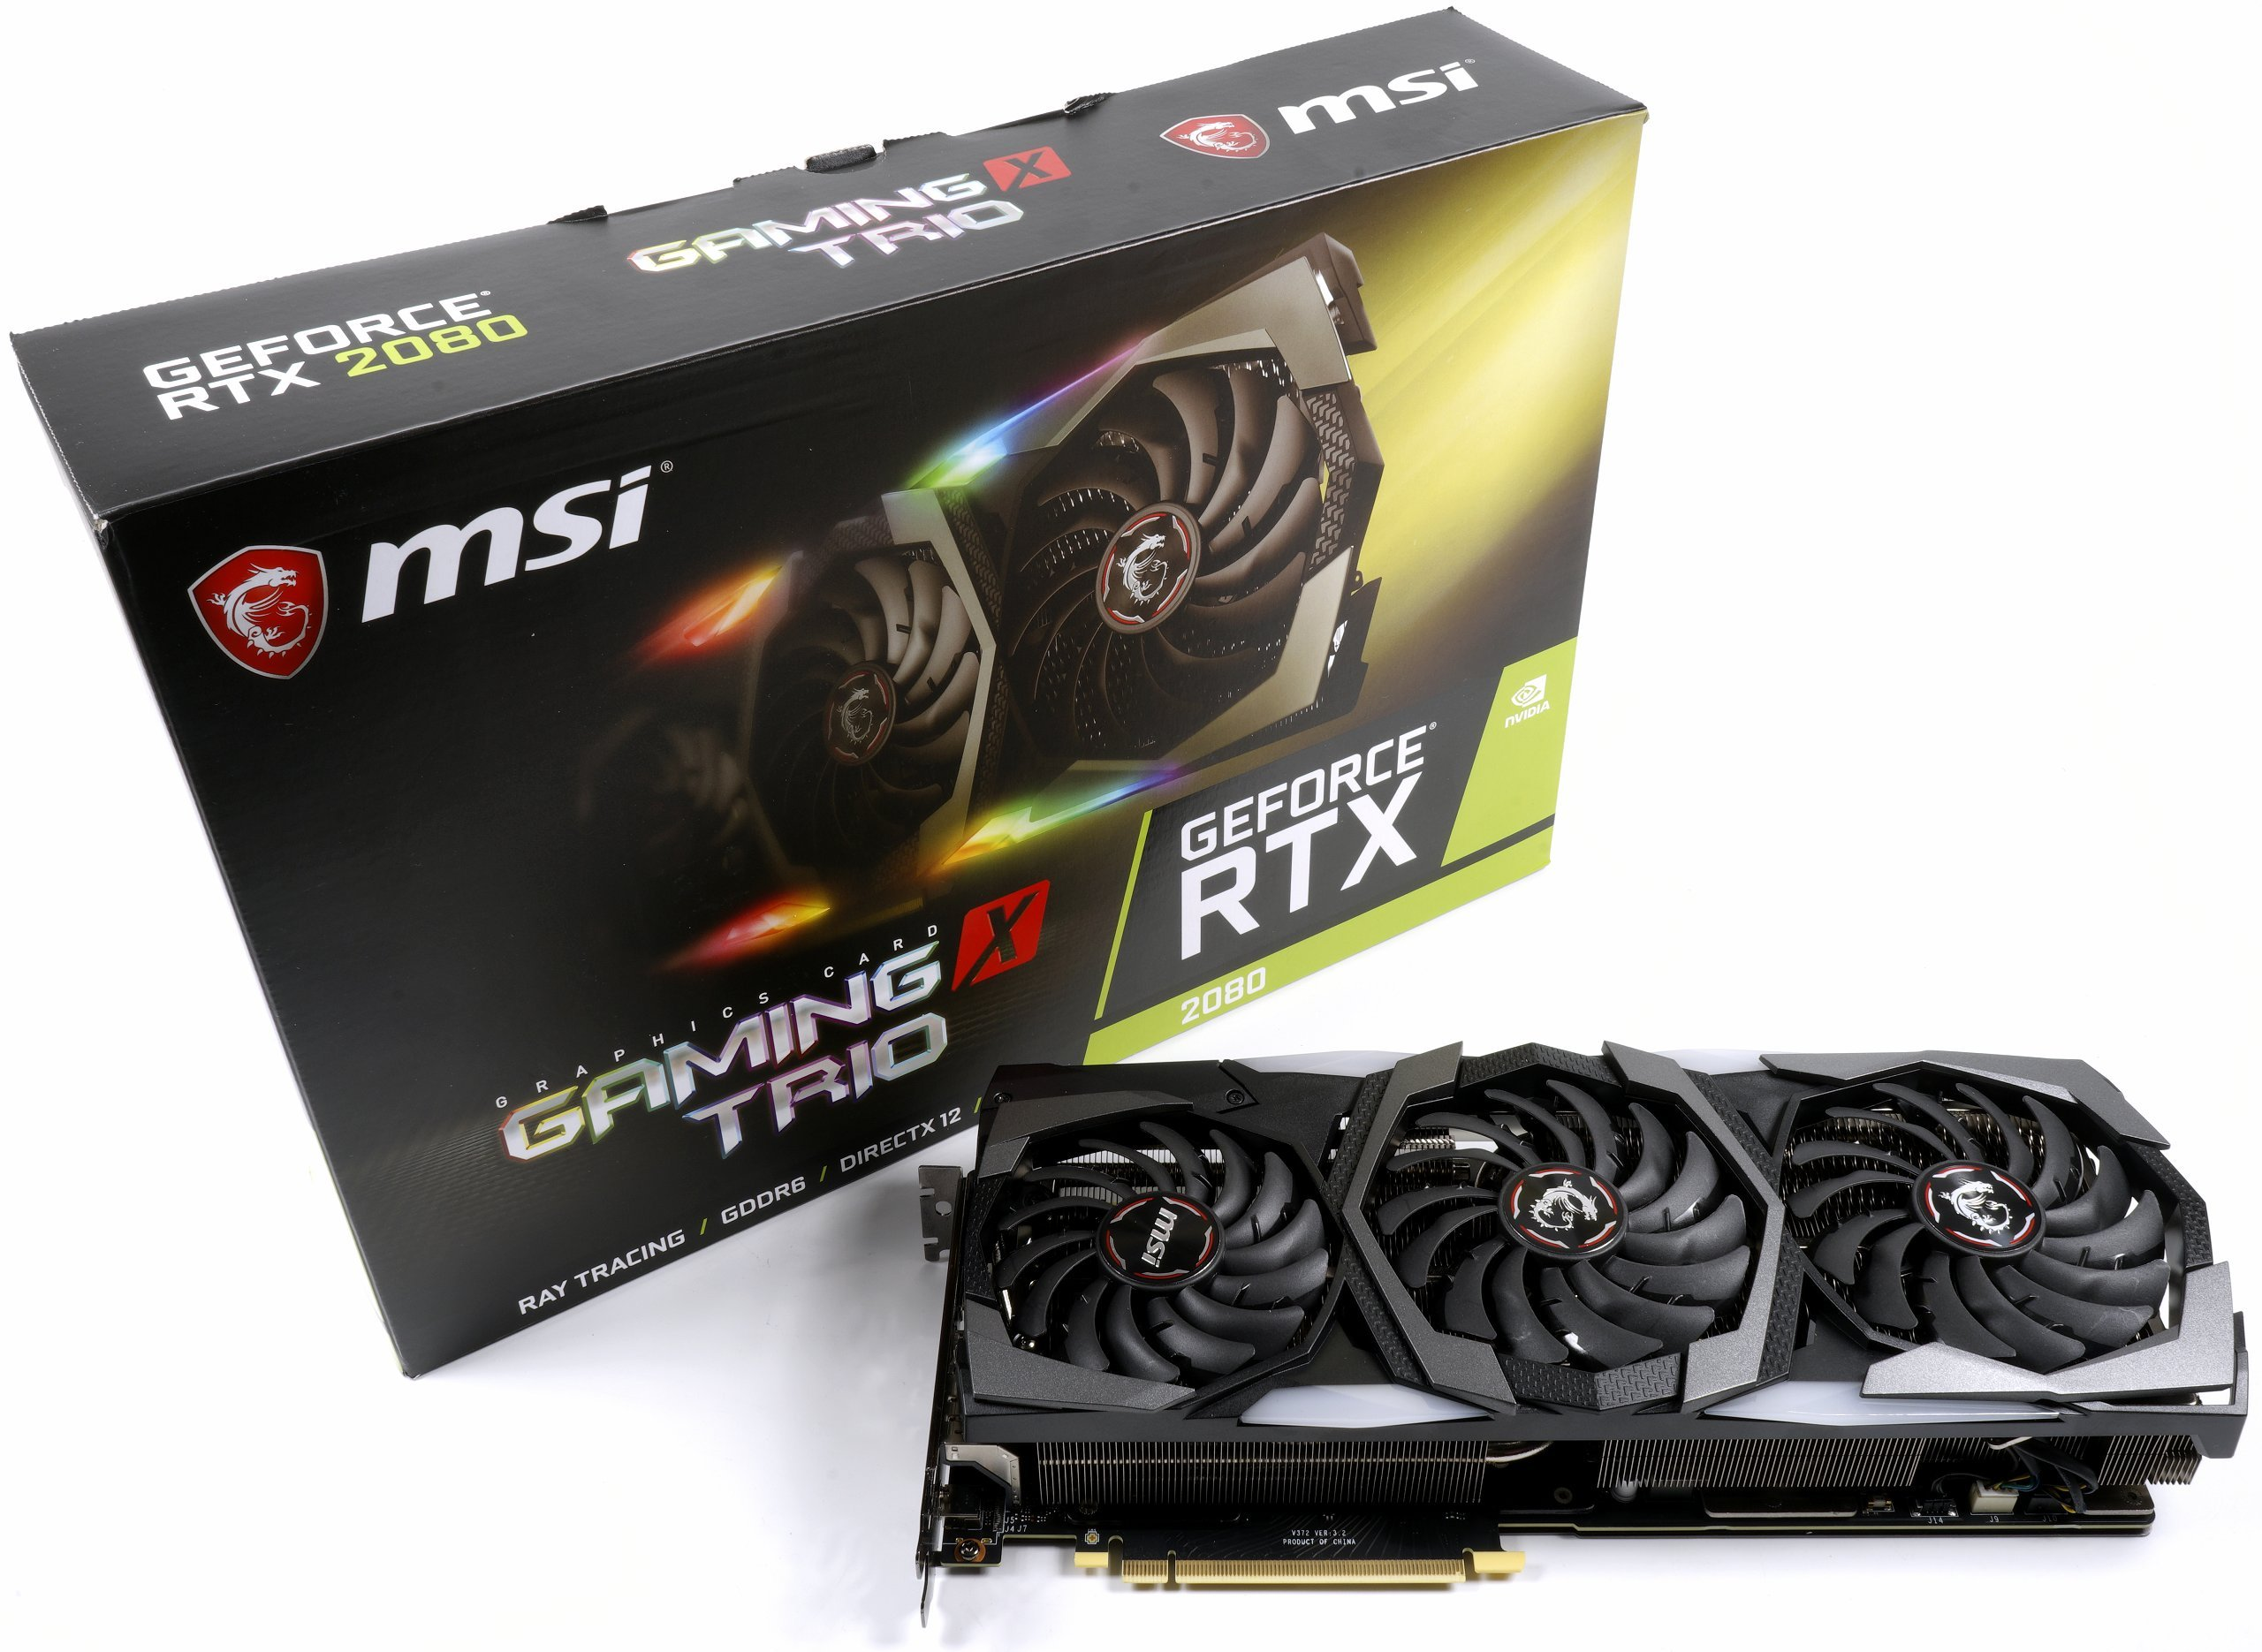 Image 1 : Test : MSI RTX 2080 Gaming X Trio, silencieuse et rapide